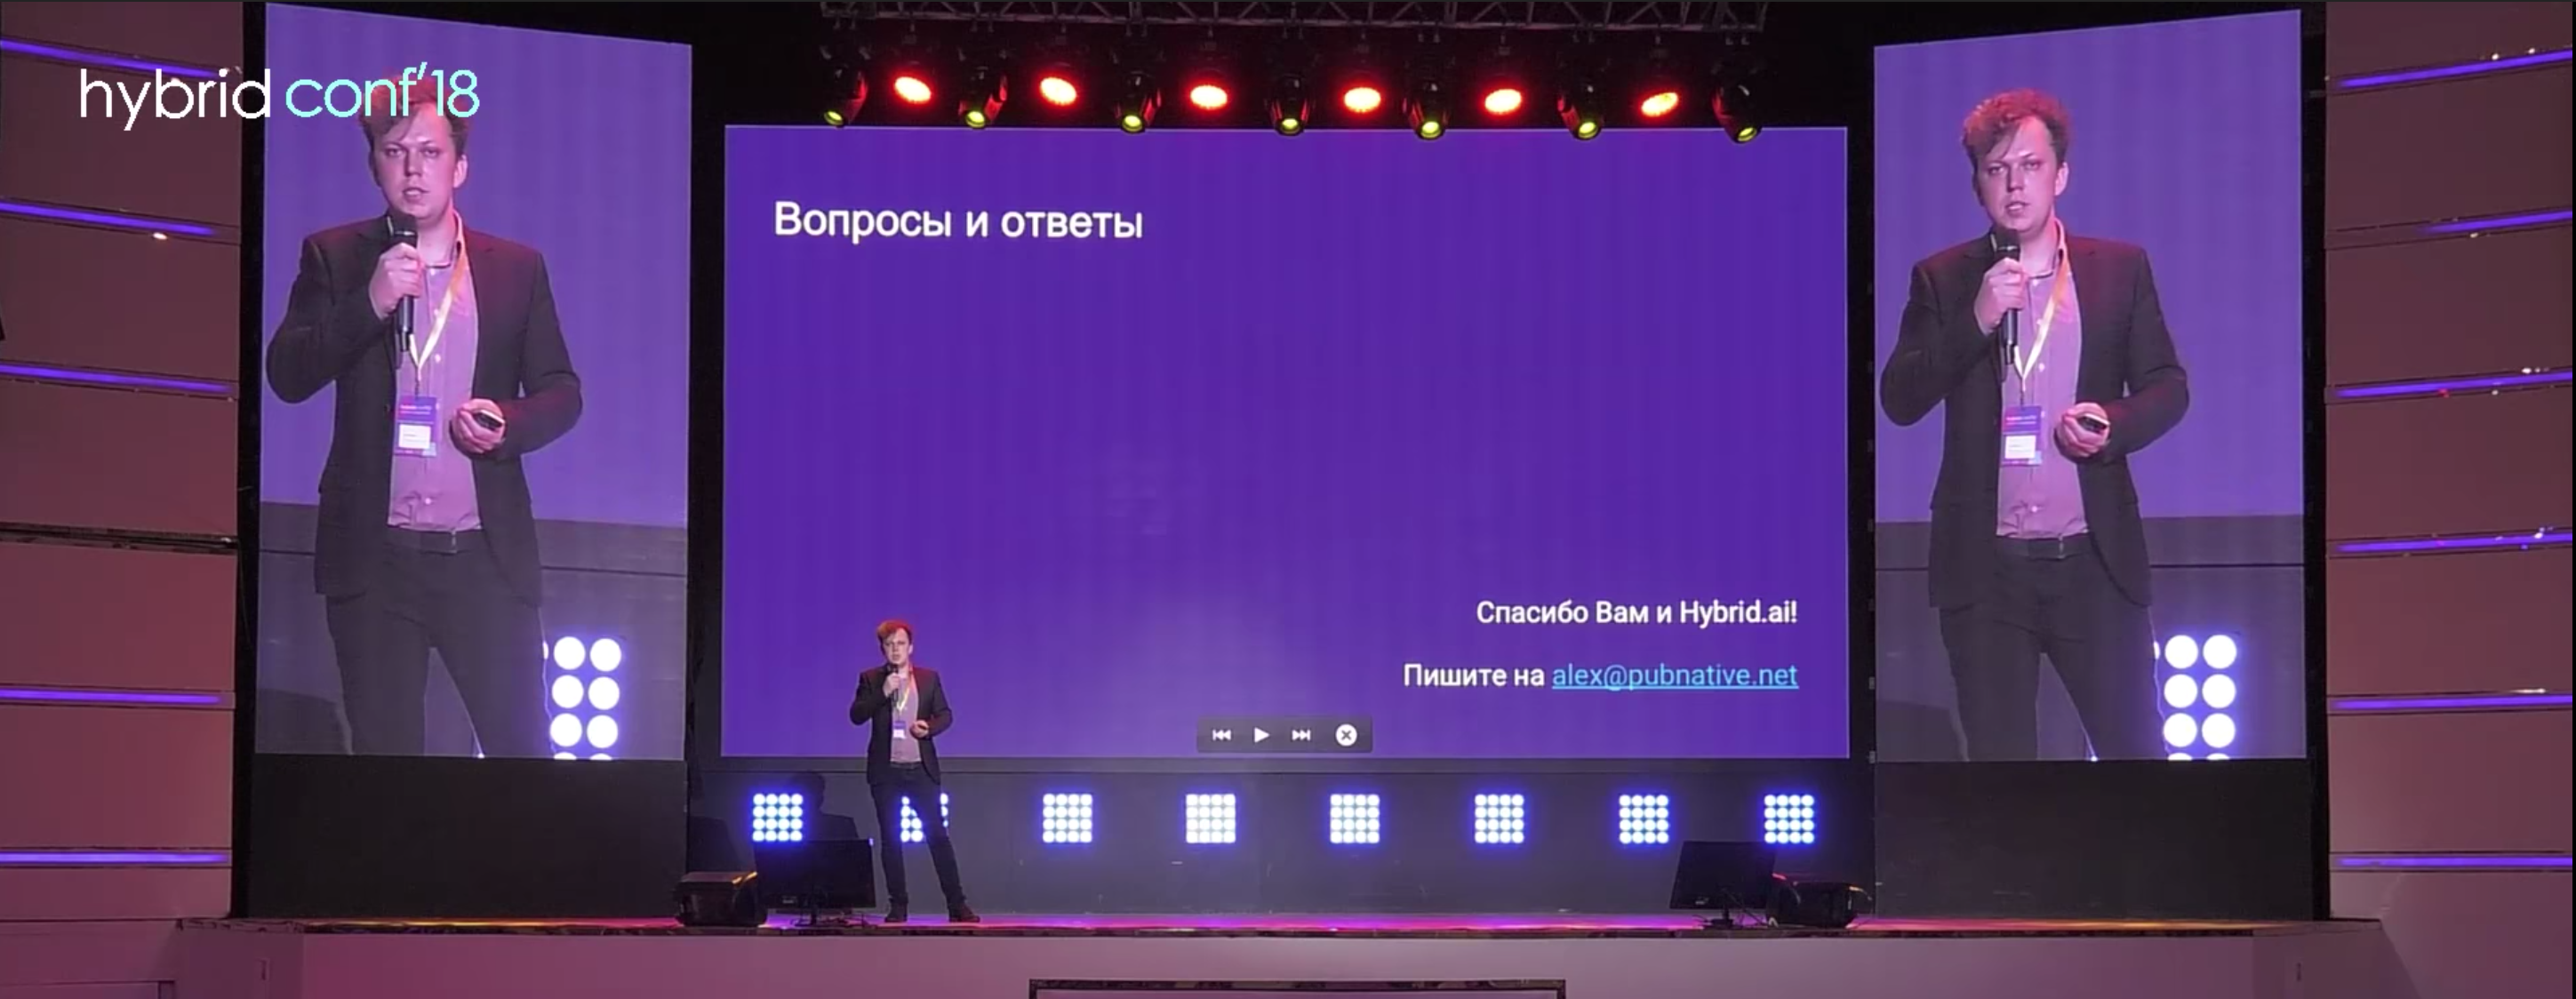 Machine Learning in SSP: Lead Product Manager Alexander Savelyev at Hybrid Conf'18